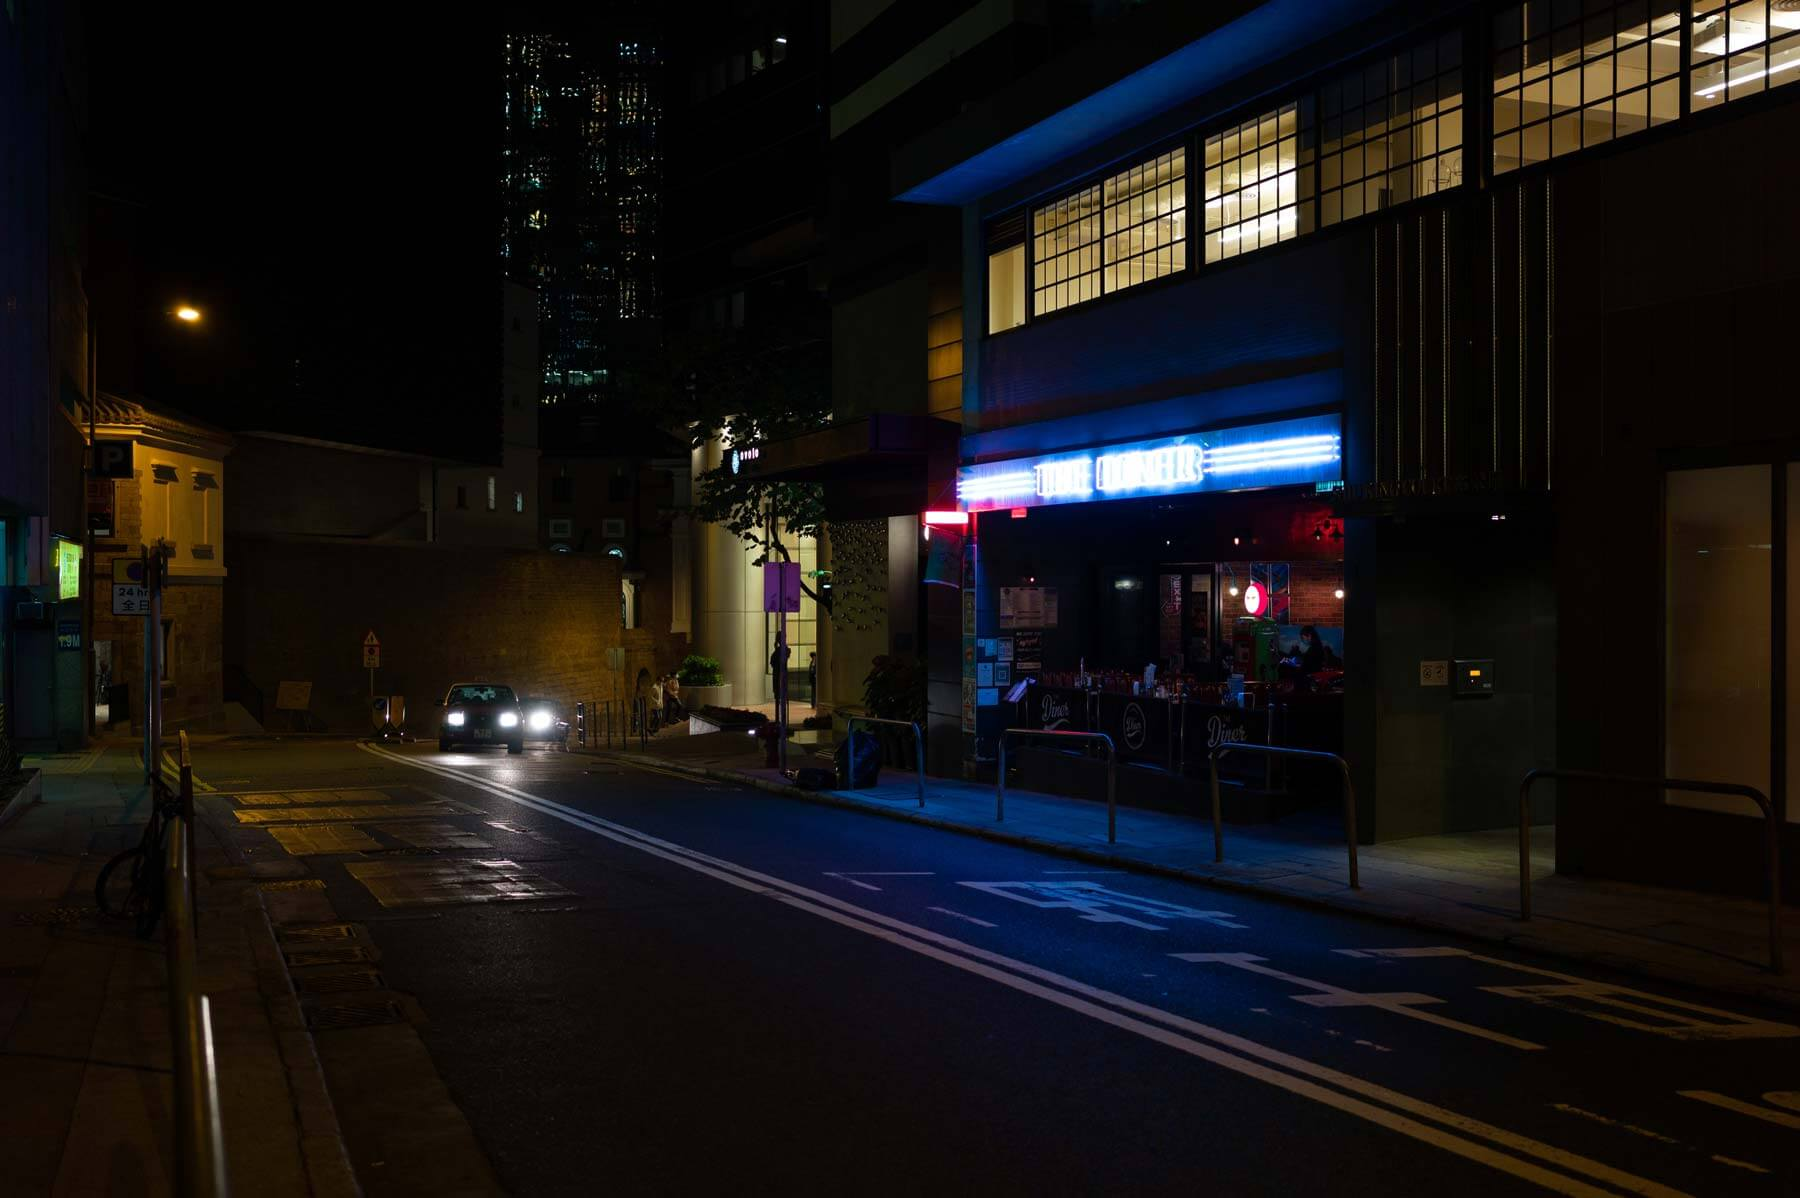 Voigtlander-35mm-f2-APO-lanthar-first-impression-review-lens-lenses-gear-test-new-vm-m-mount-sharpness-great-perfromance-at-night-neon-sign-hong-kong